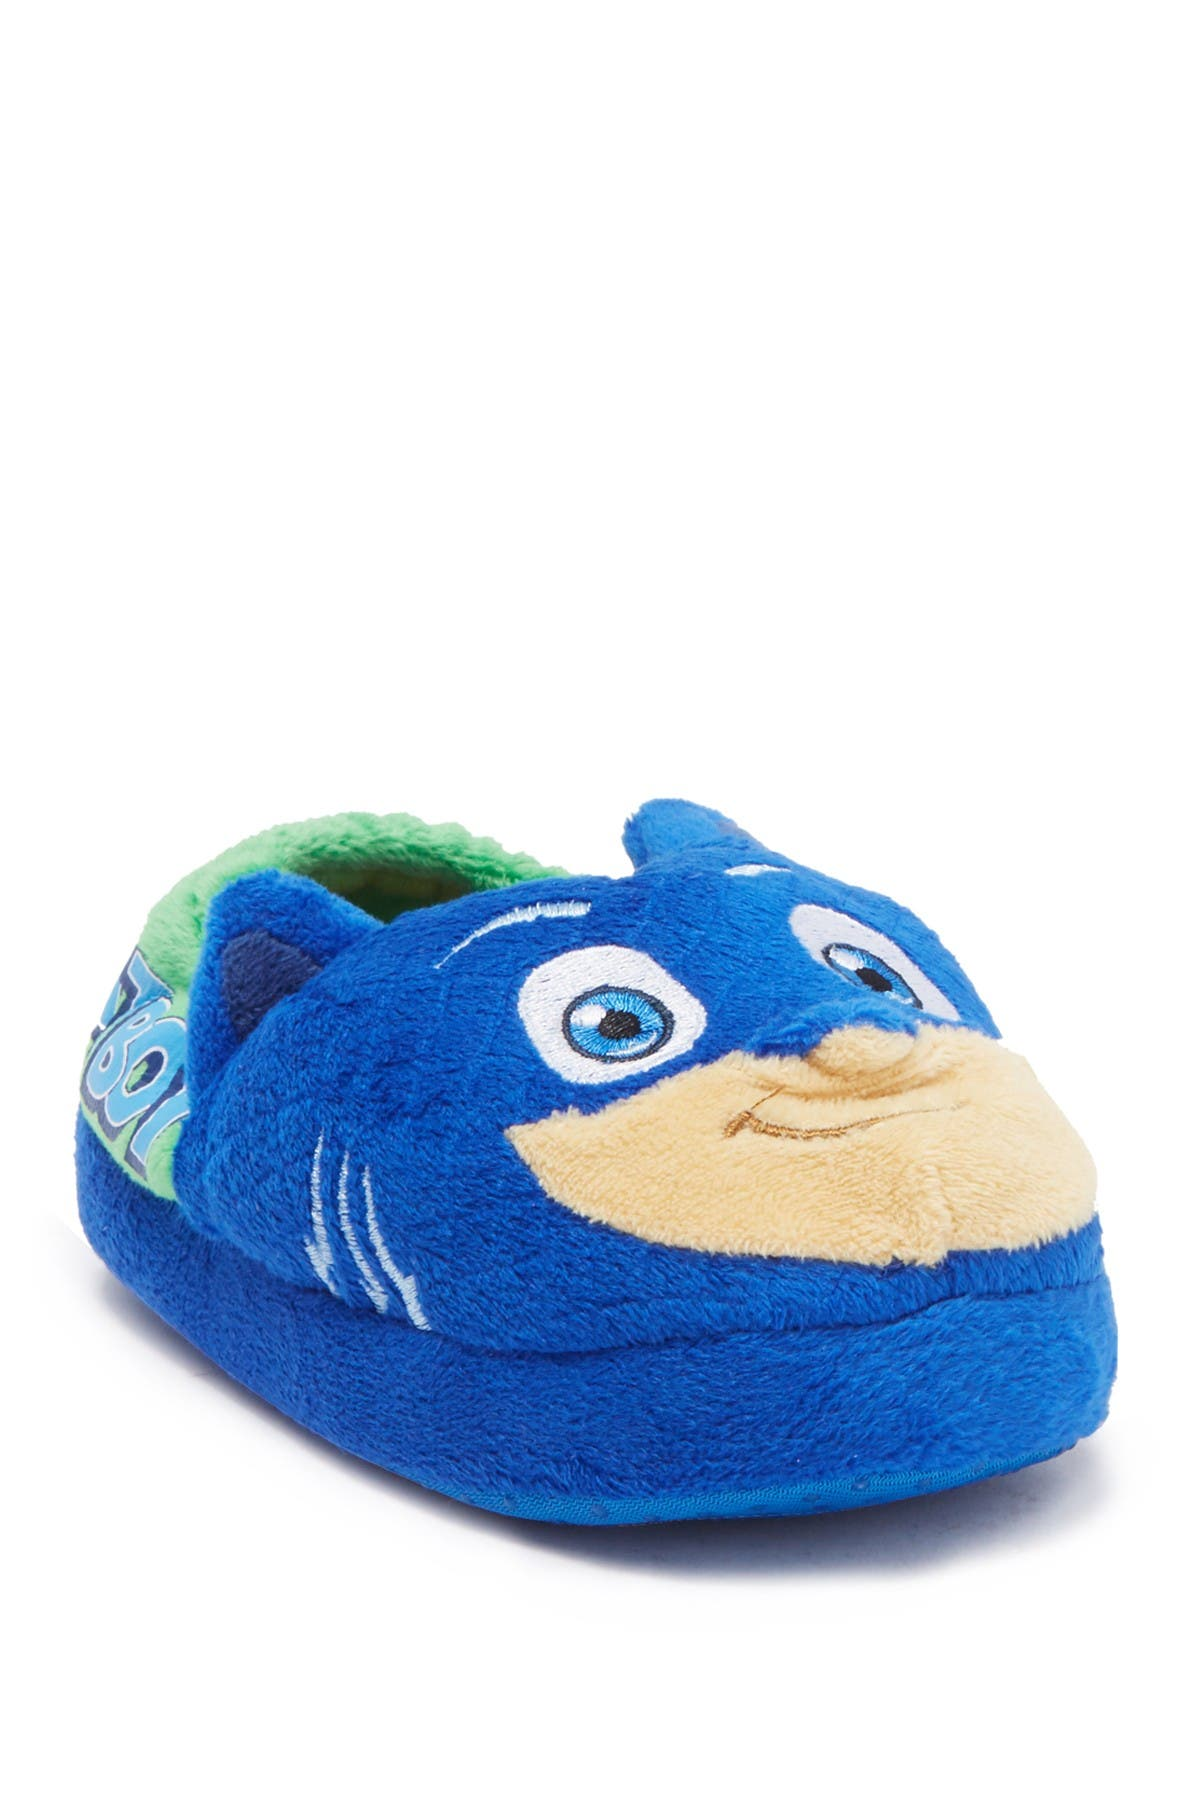 Image of SG Footwear PJ Masks Mismatched Slipper